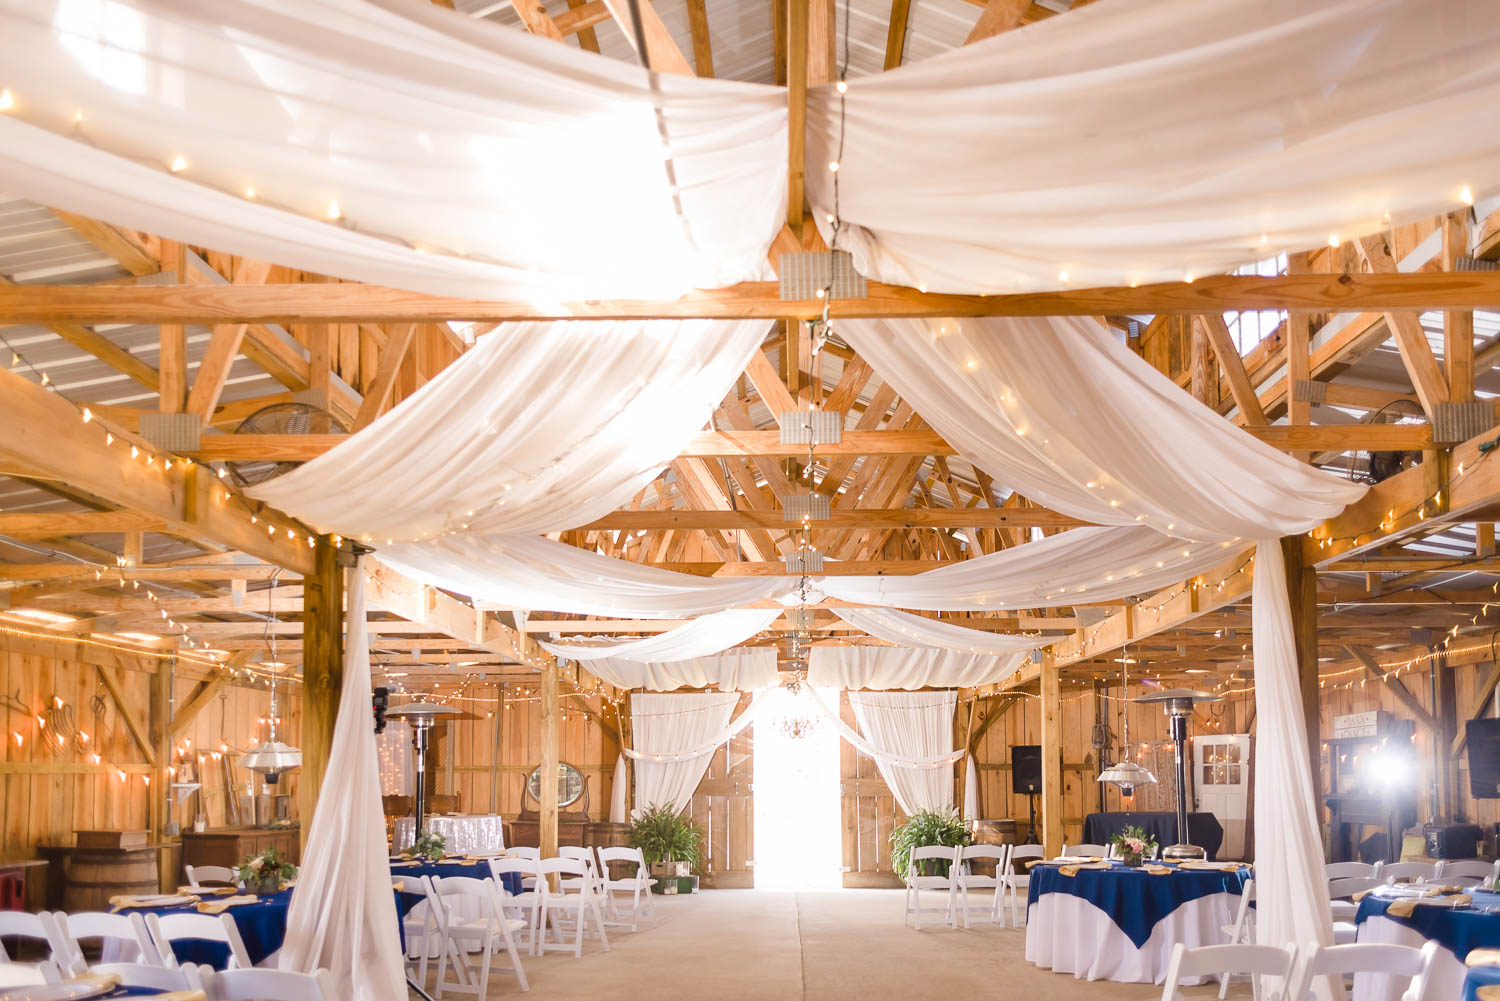 inside of the Barn at Drewia Hill in sale Creek TN decorated in Navy and white for fall wedding